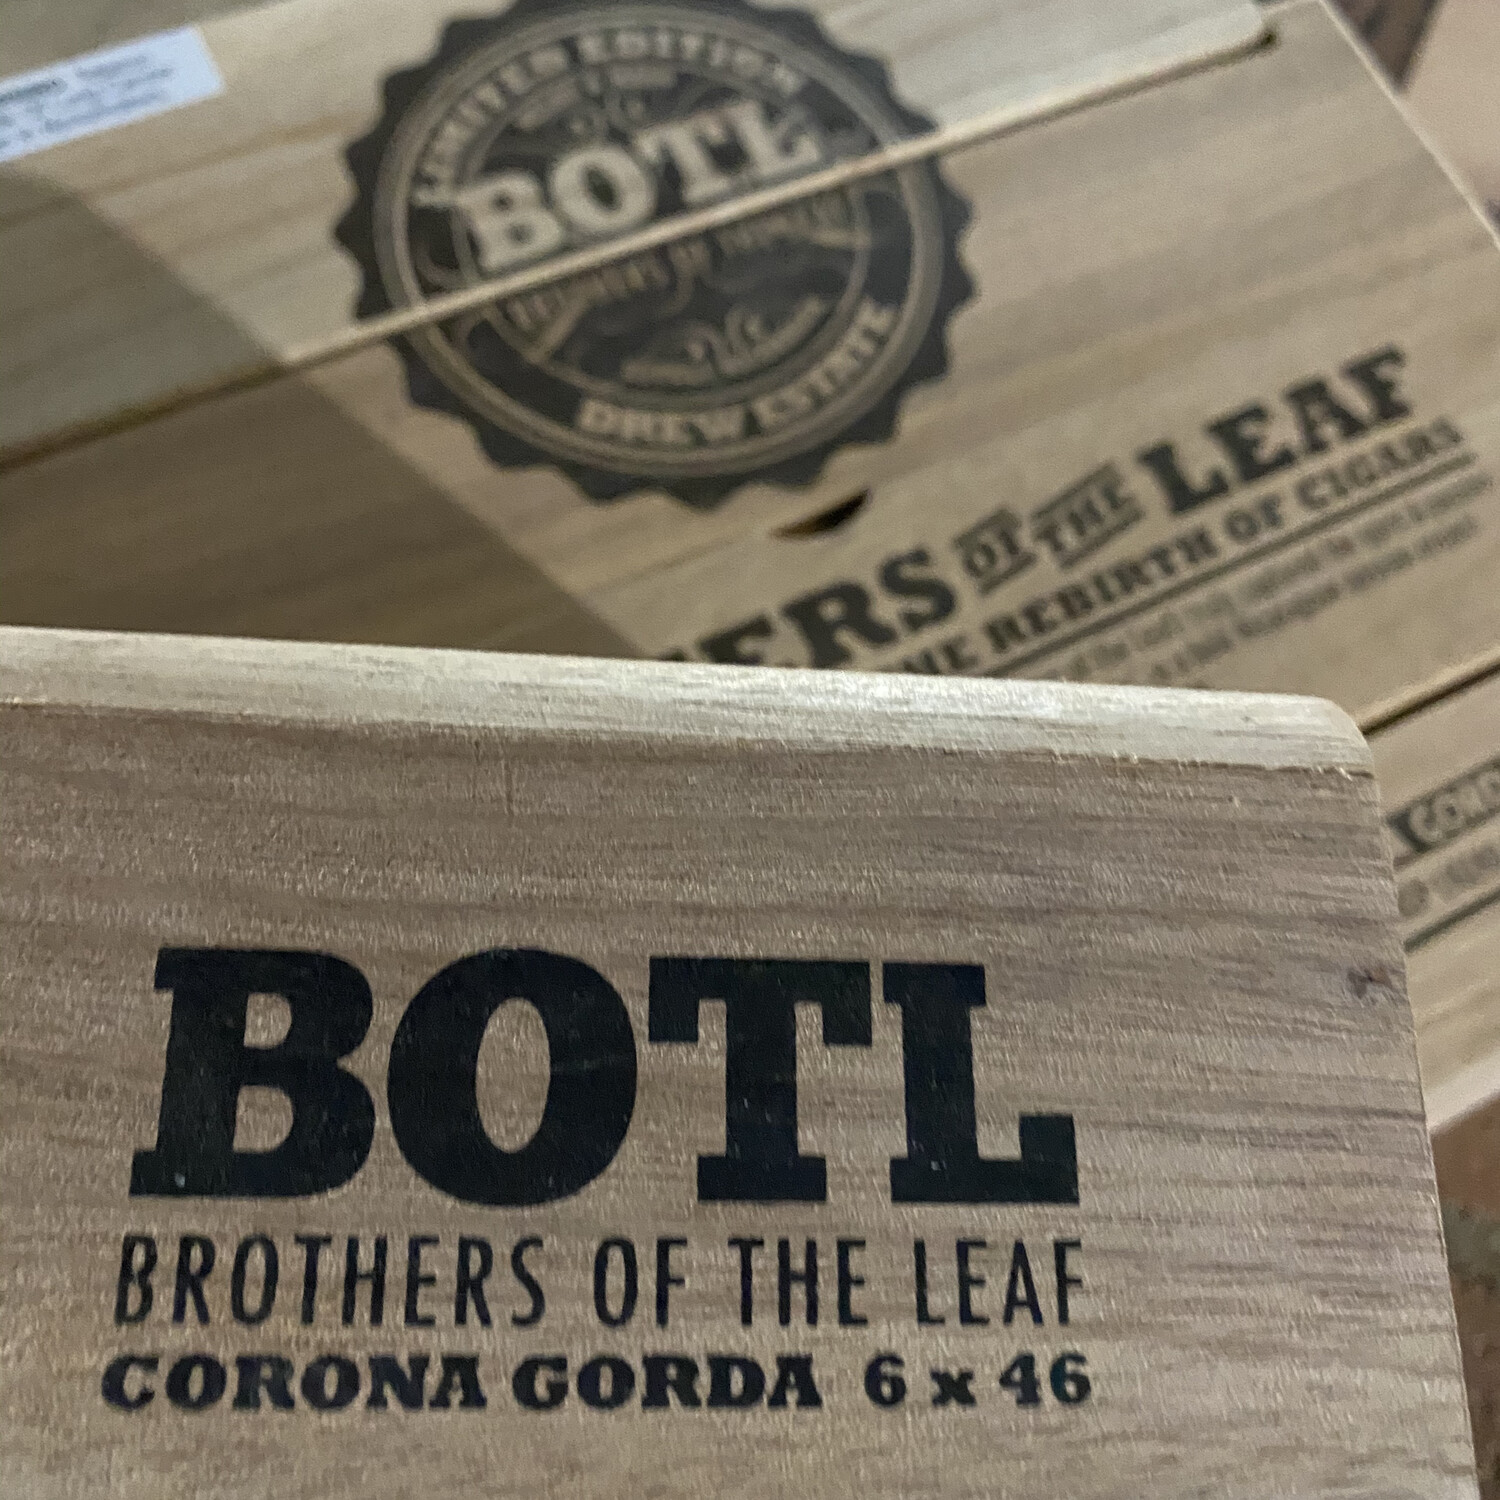 BOTL - Corona Gorda 6x46, 15's Brothers of the Leaf Cigar